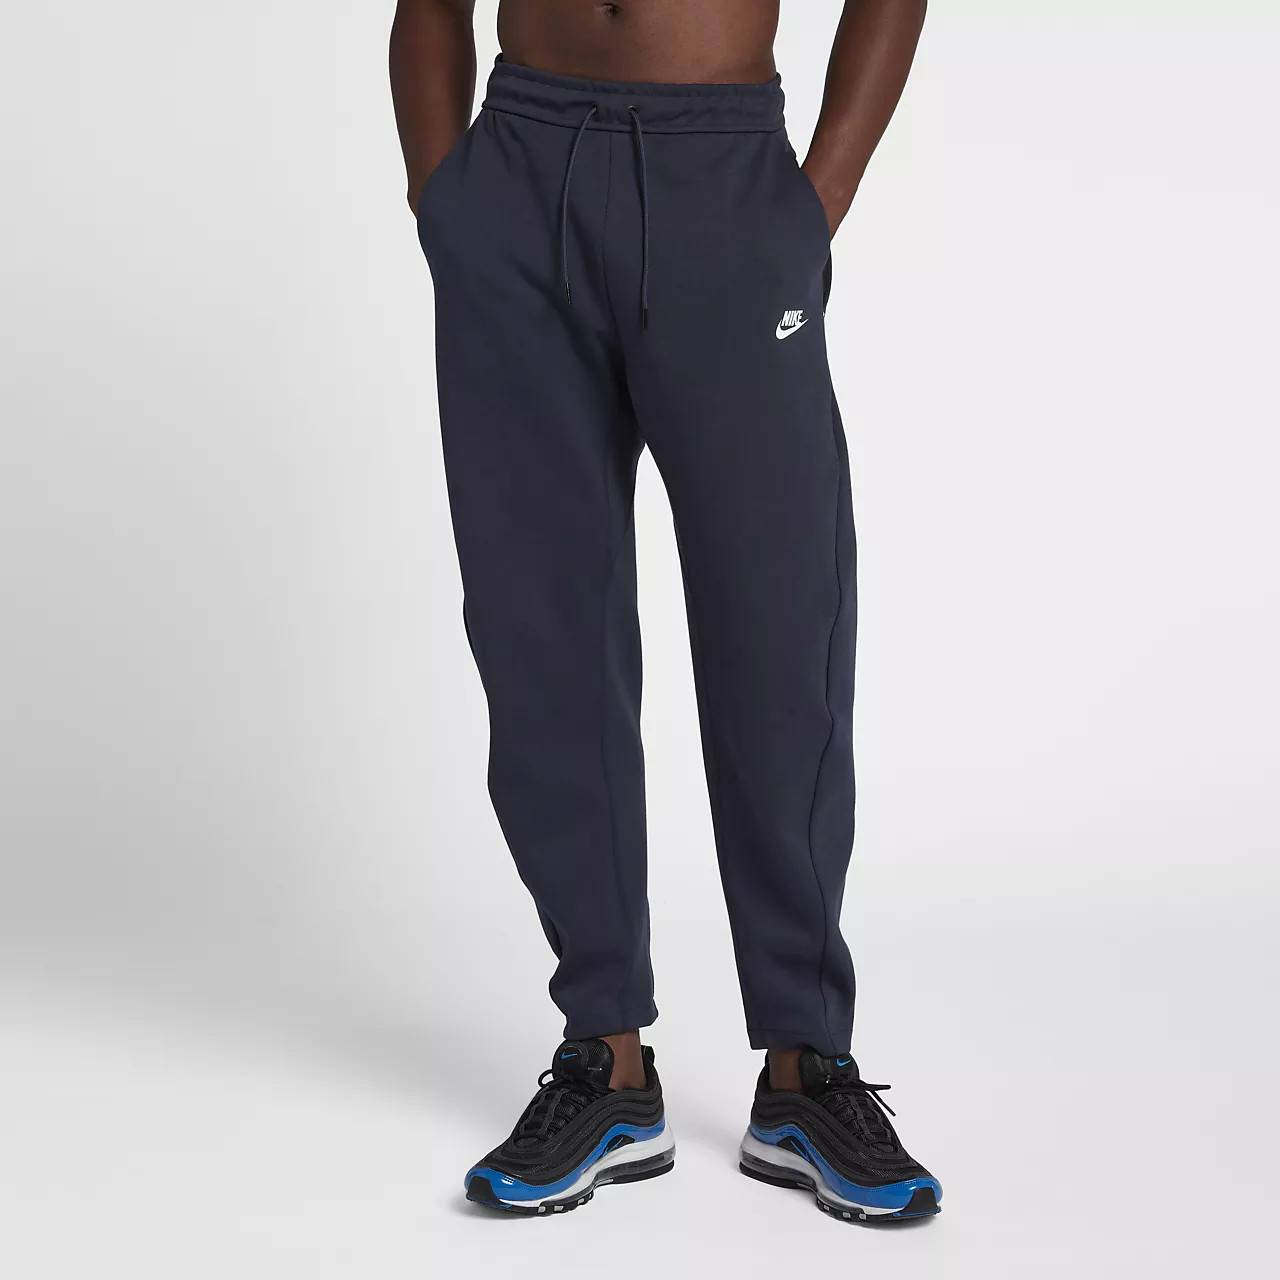 83c550bf Штаны Nike Sportswear Tech Fleece Trousers 928507-451 (Оригинал) - Football  Mall -